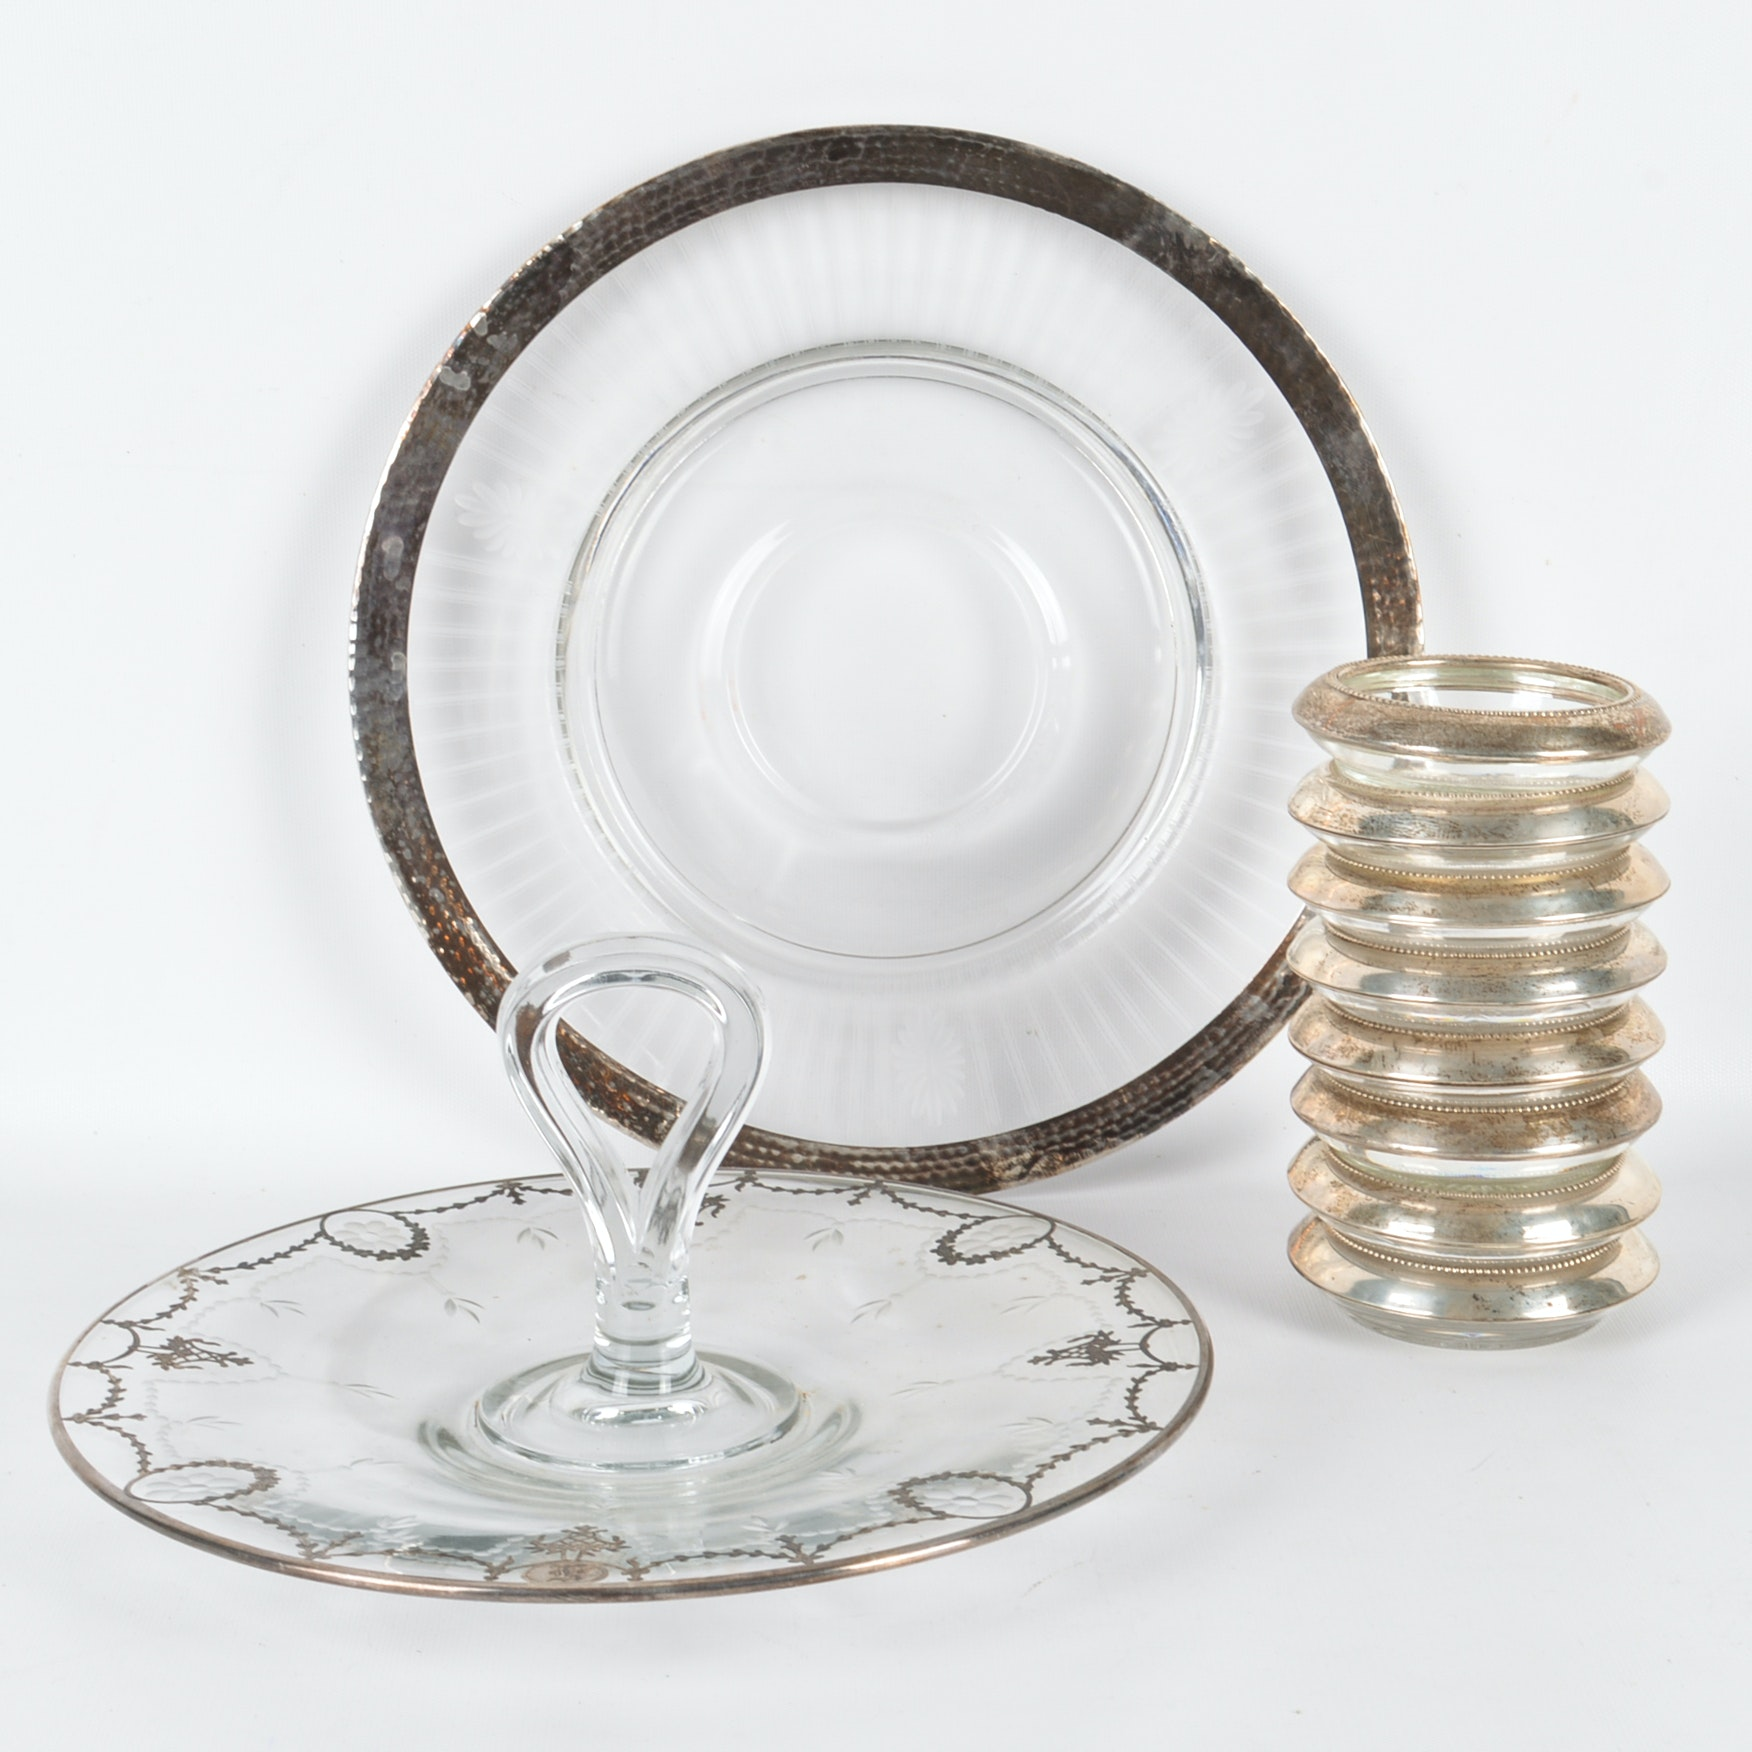 Sterling Silver Rimmed Coasters and Vintage Tableware